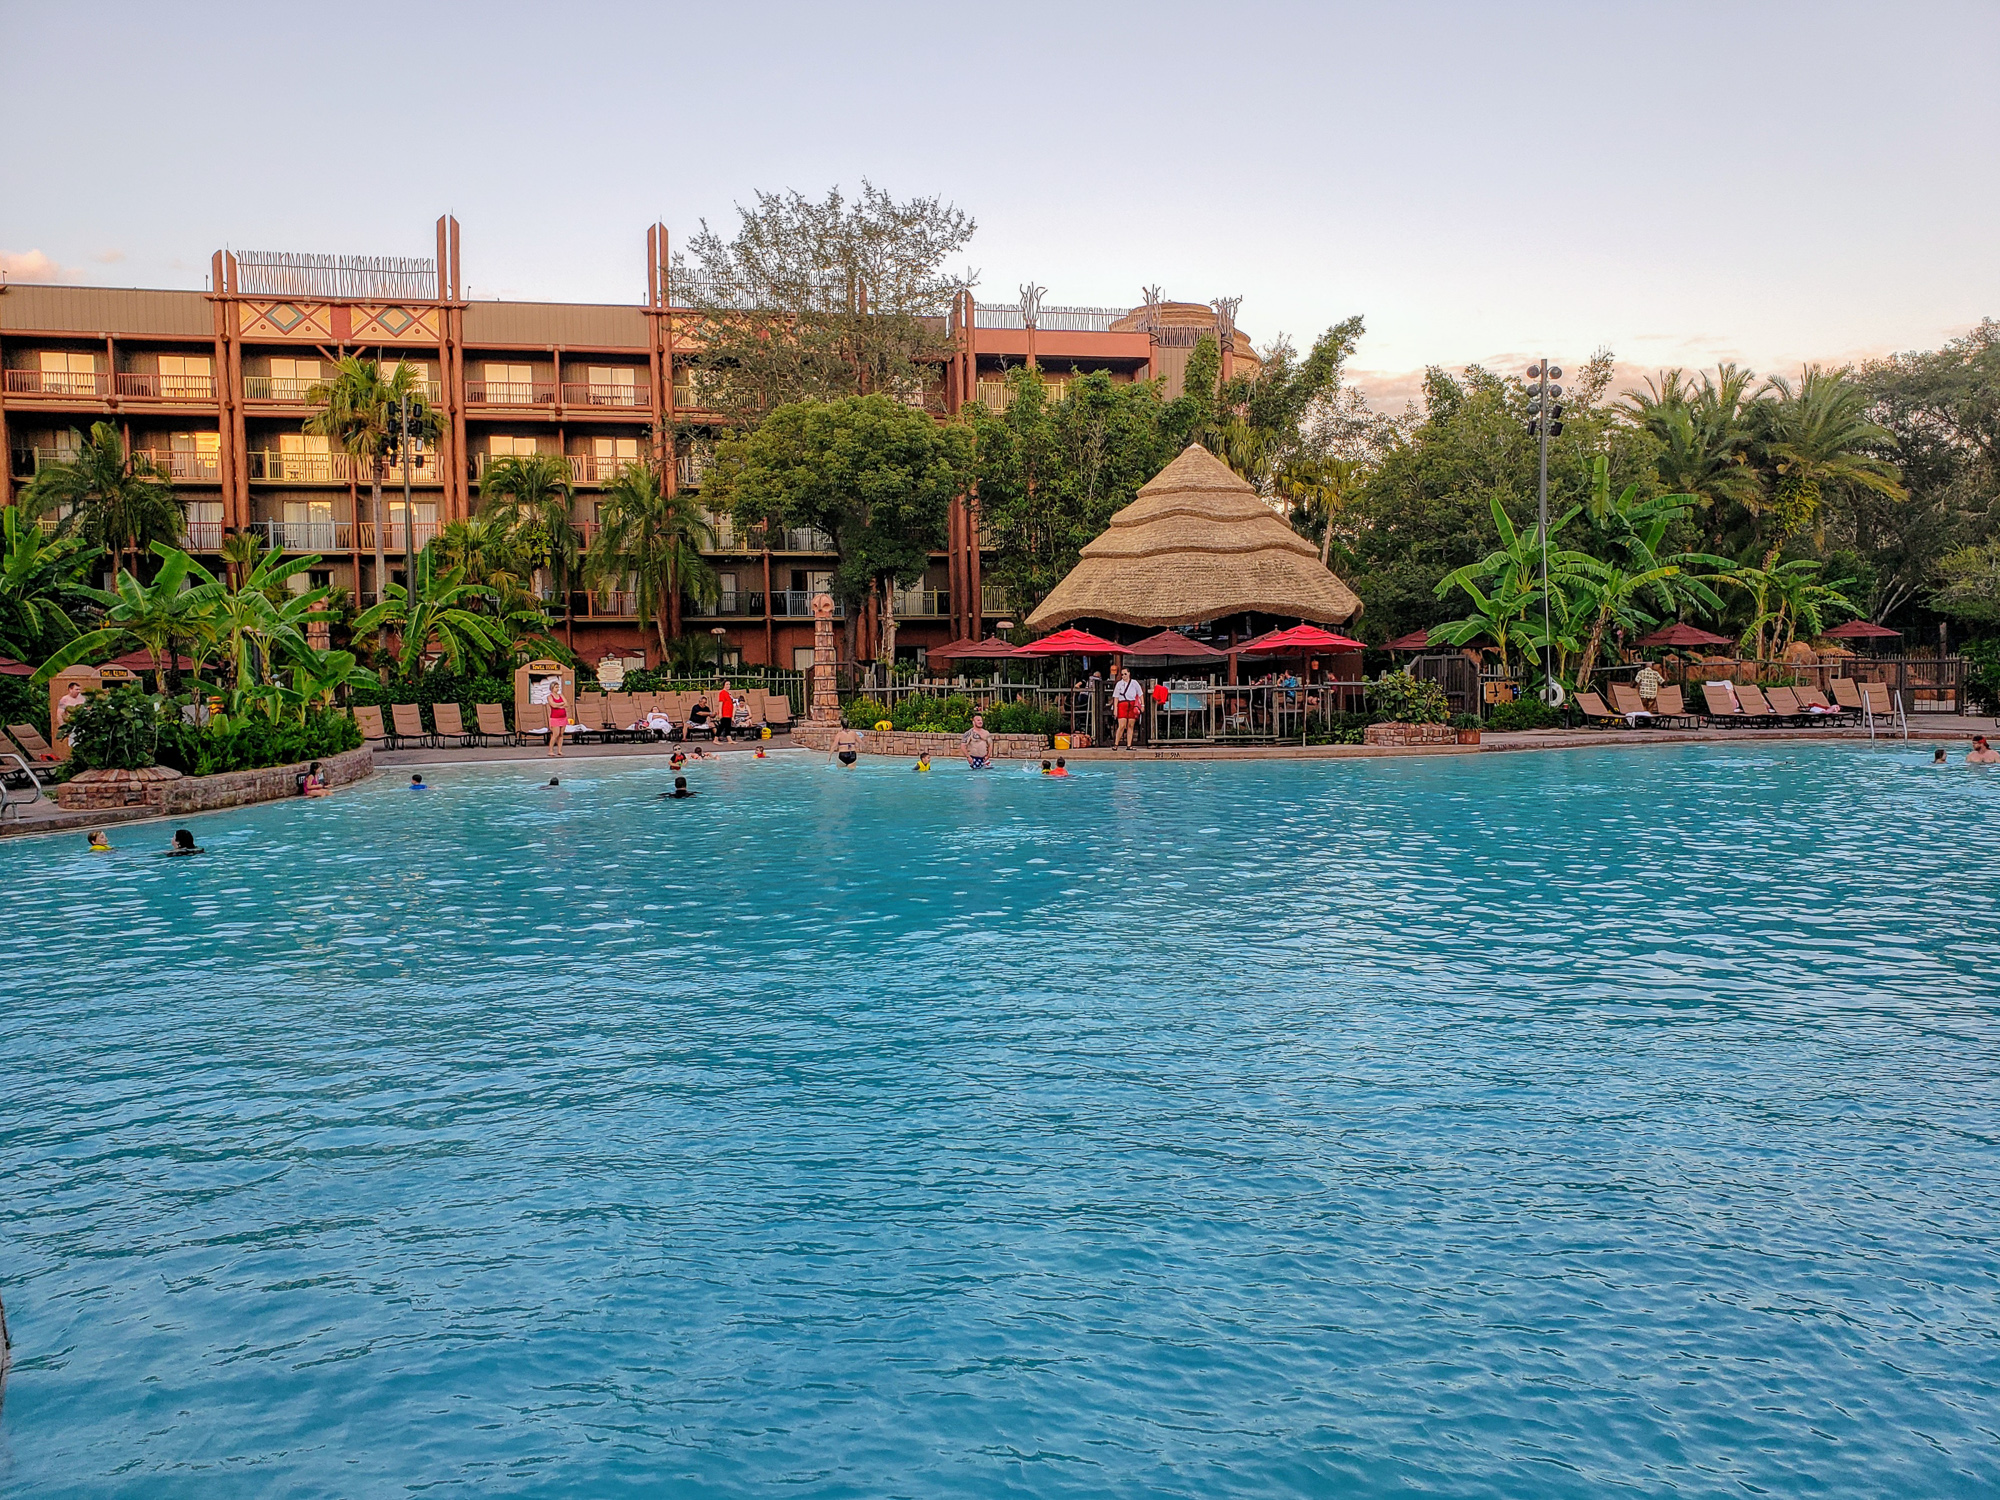 Pool at Disney's Animal Kingdom Lodge